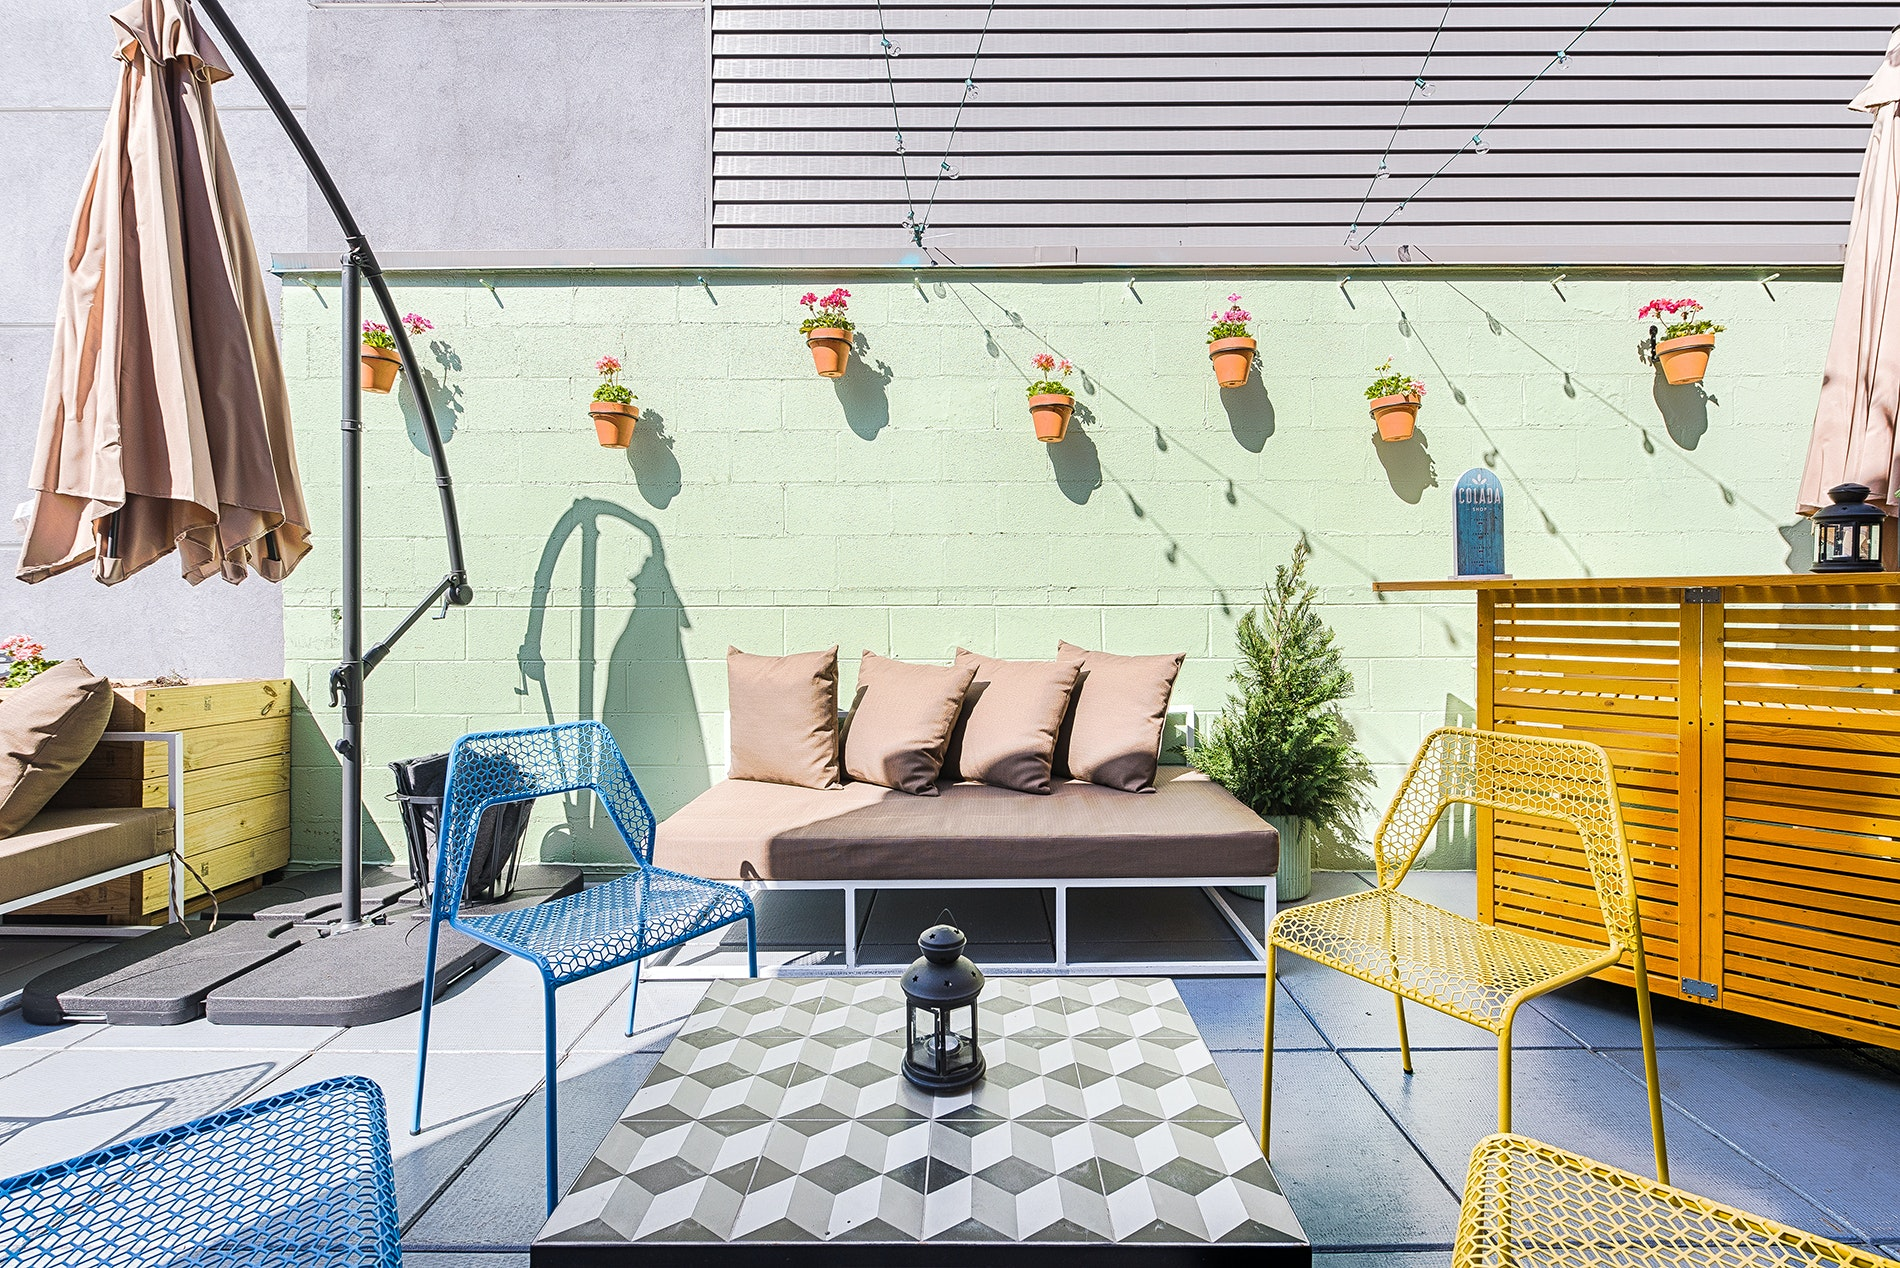 Beachy vibes rule the roof at the Colada Shop.